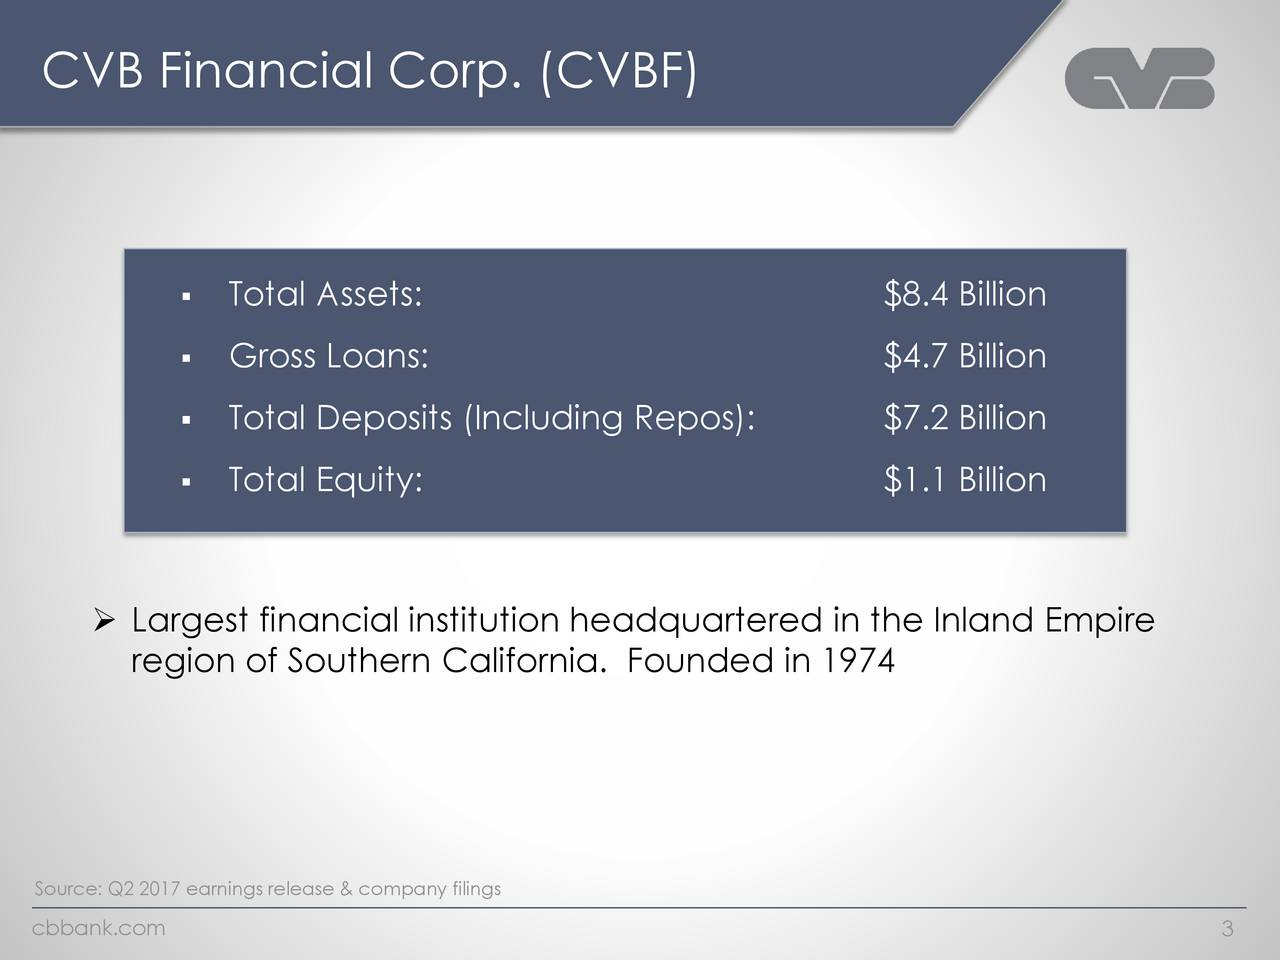 Total Assets: $8.4 Billion Gross Loans: $4.7 Billion Total Deposits (Including Repos): $7.2 Billion Total Equity: $1.1 Billion Largest financial institution headquartered in the Inland Empire region of Southern California. Founded in 1974 Source: Q2 2017 earnings release & company filings cbbank.com 3